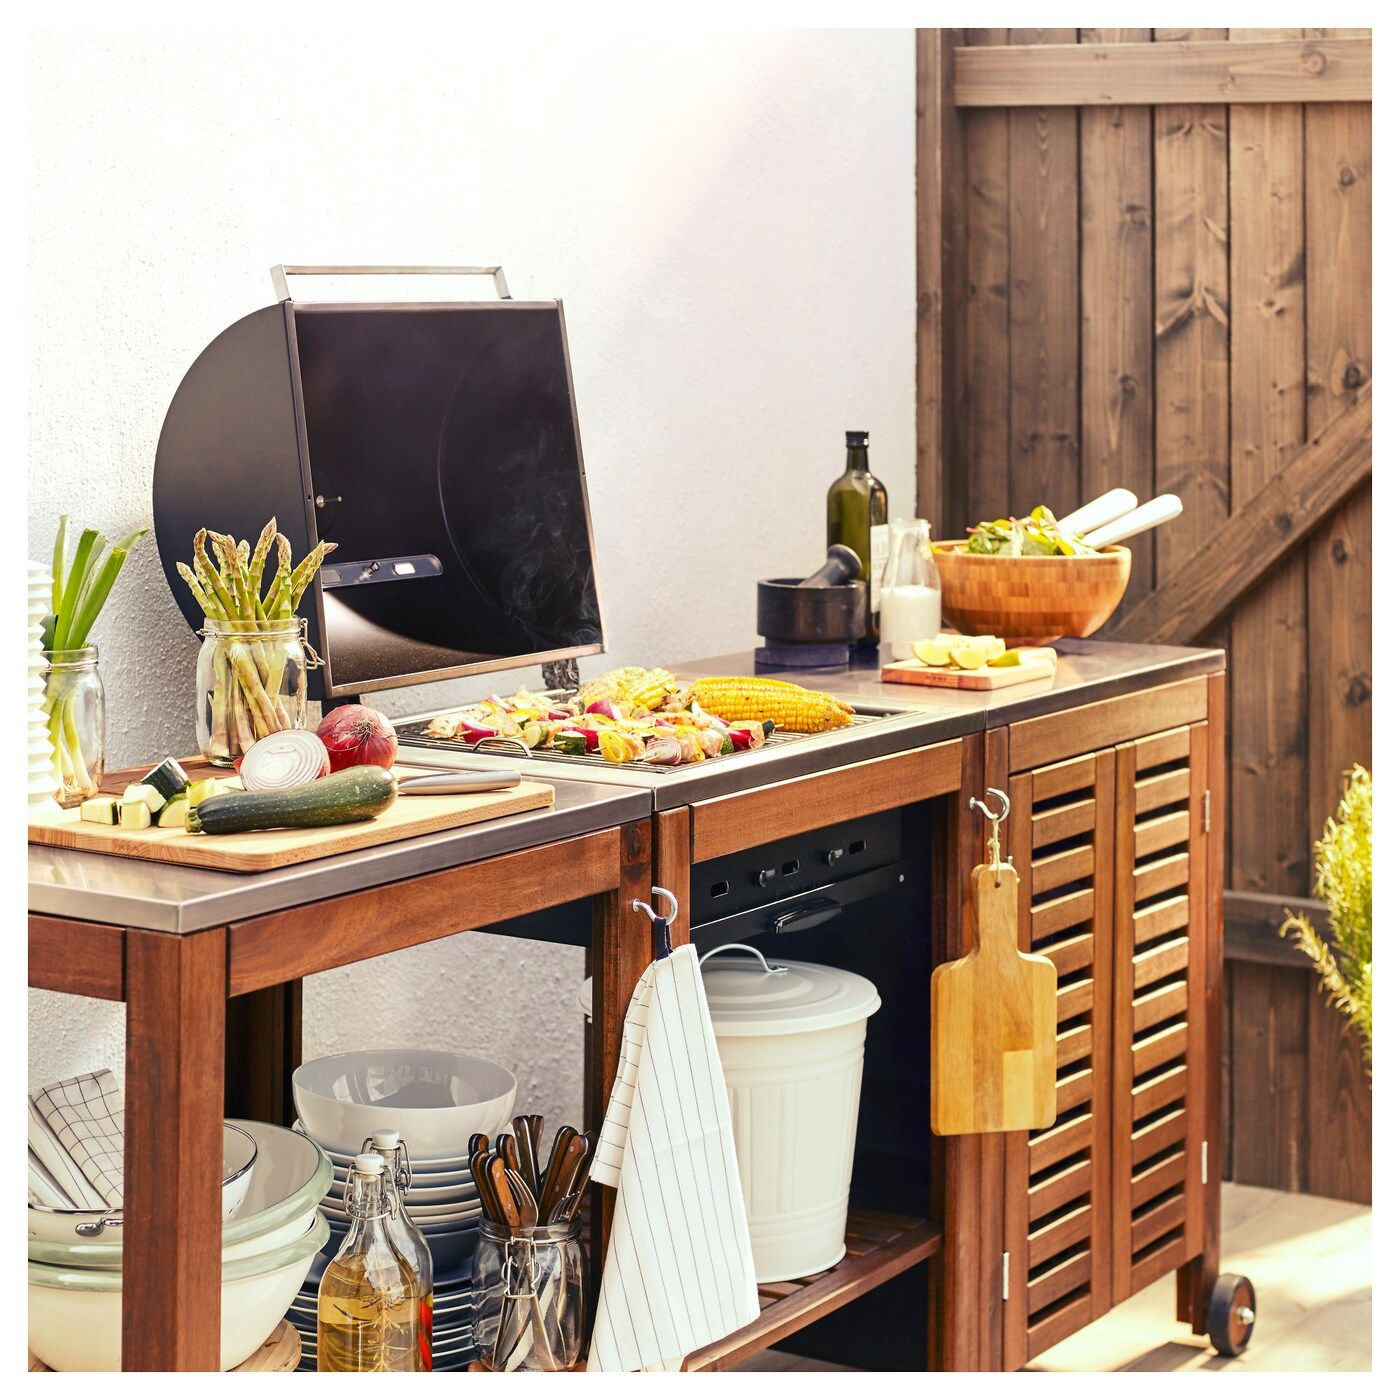 Applaro Klasen Charcoal Barbecue W Cart Cabinet Brown Stained Stainless Steel Color Ikea Ikea Outdoor Outdoor Kitchen Design Outdoor Kitchen